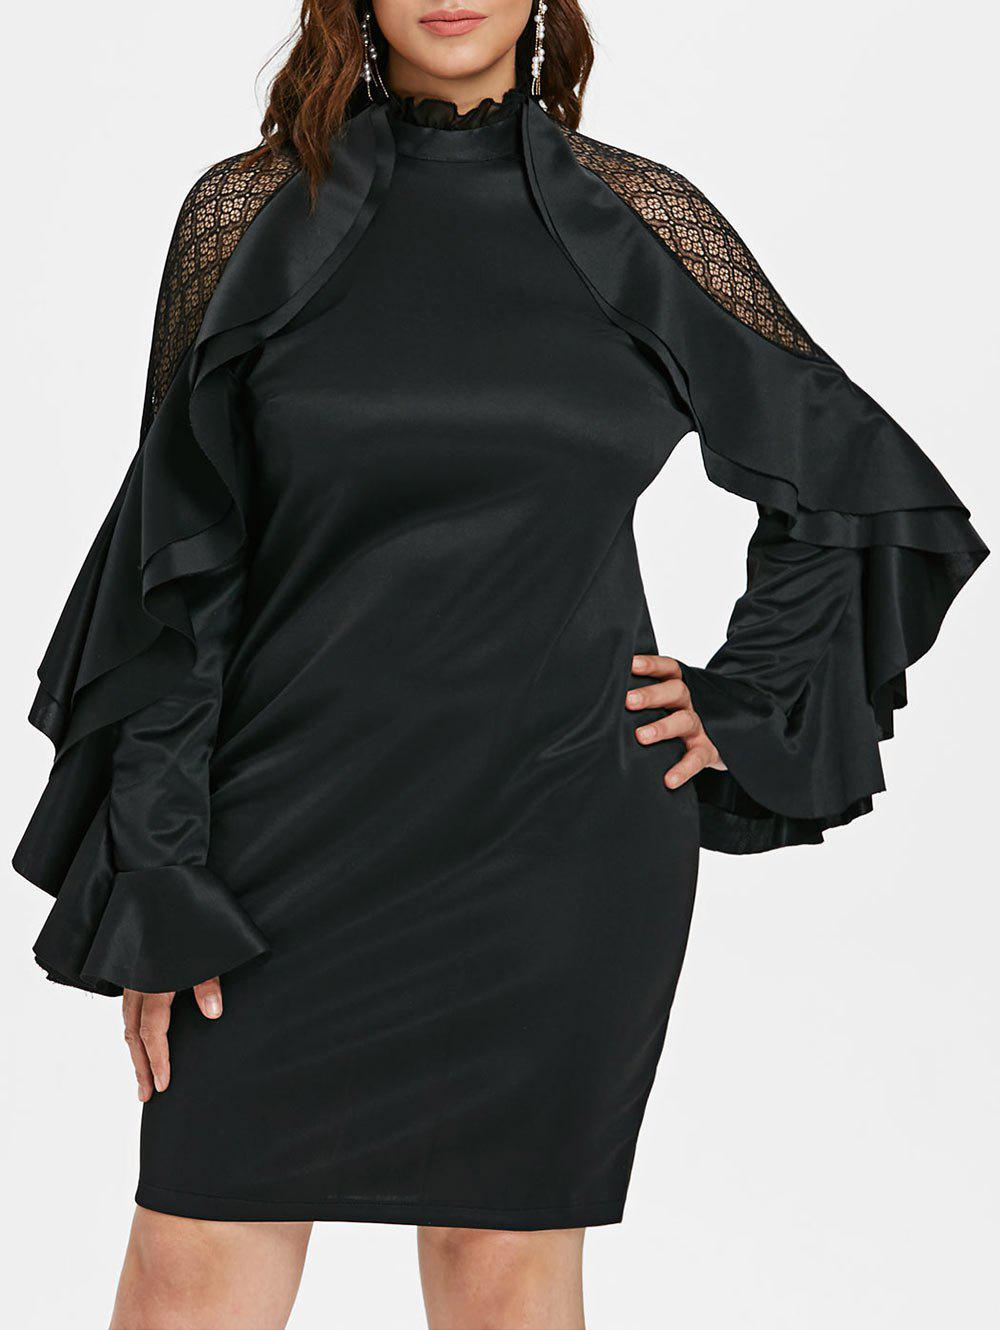 Ruffle Neck Plus Size Flare Sleeve Bodycon Dress - BLACK 4X